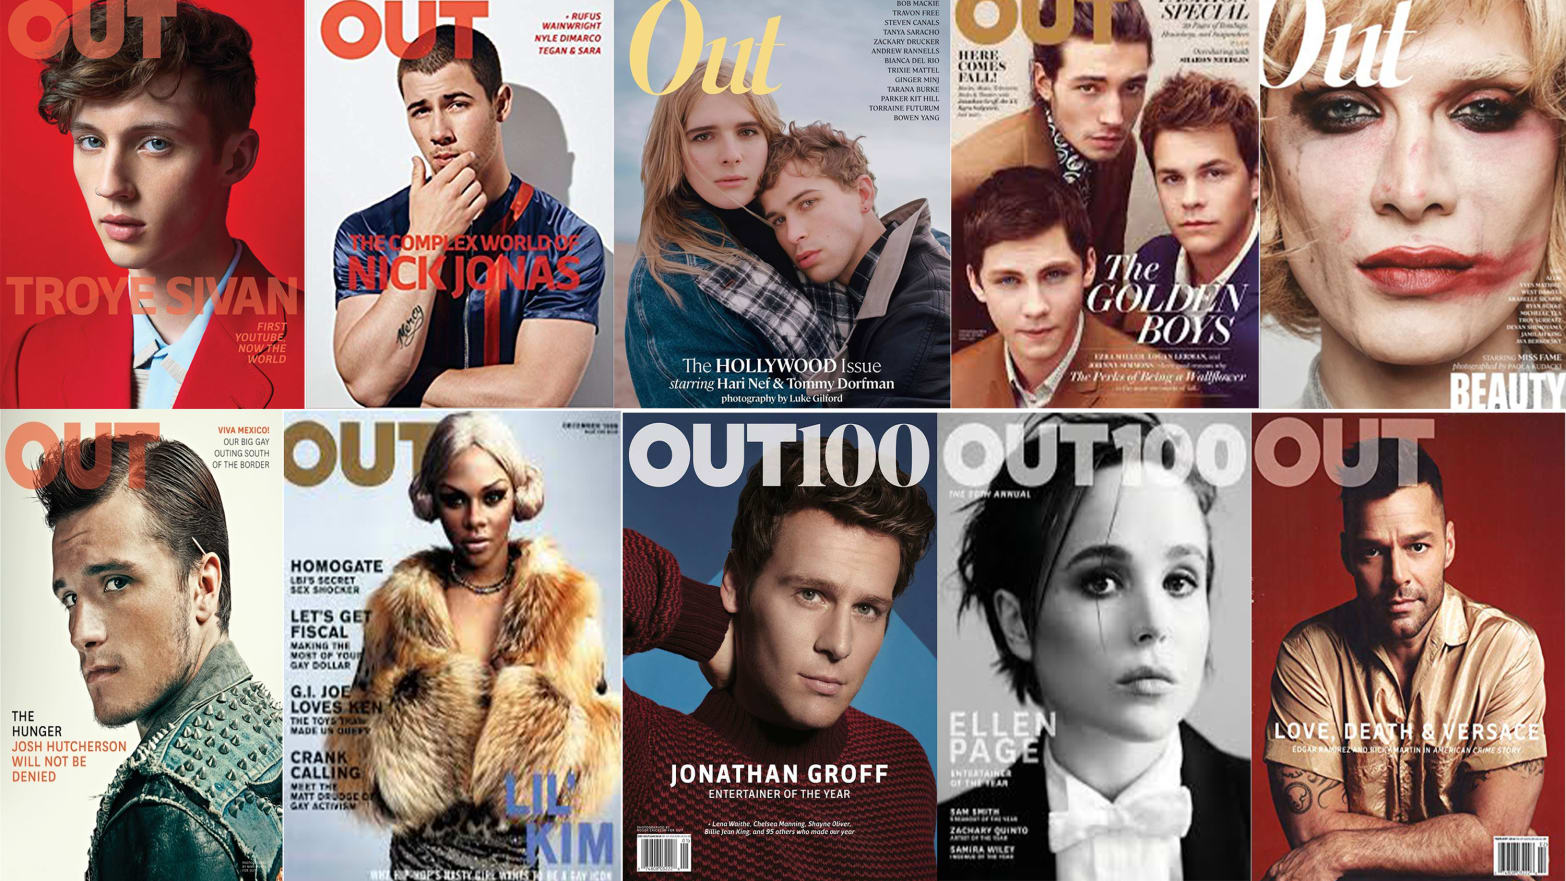 'Out' Magazine Chief Phillip Picardi Threatens to Quit in Battle Over Unpaid Writers